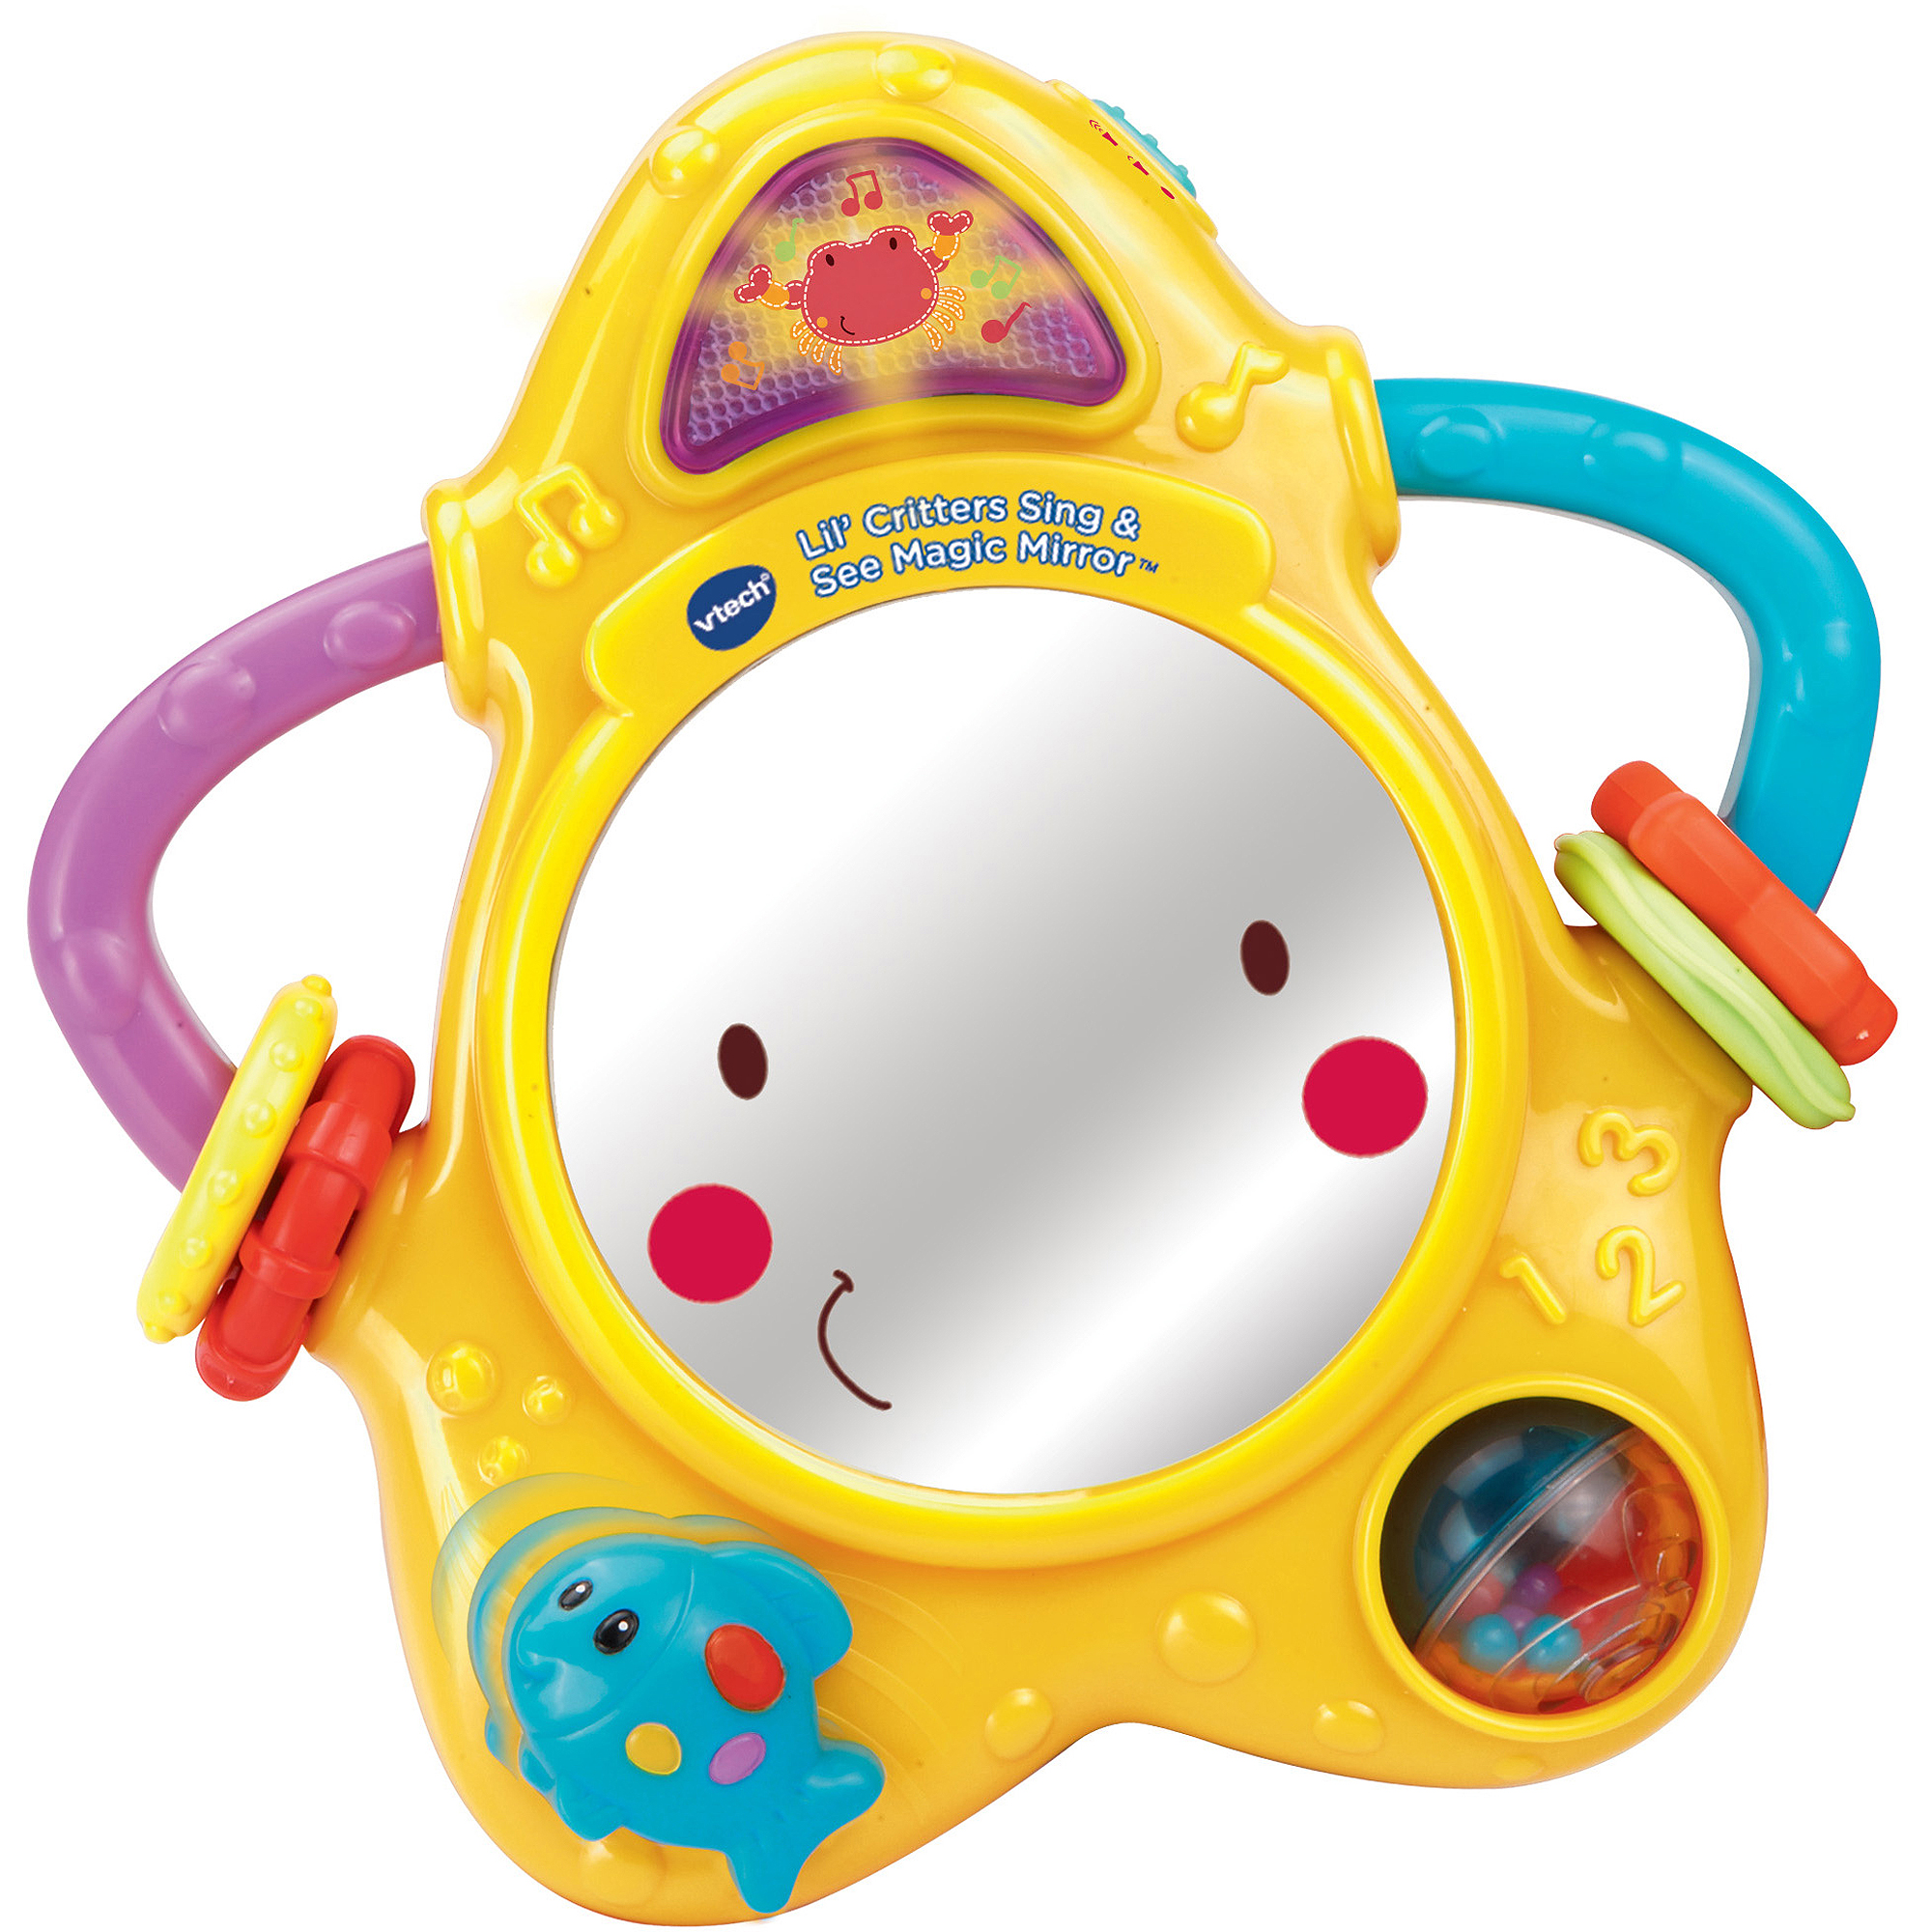 VTech Baby Line Lil' Critters Sing & See Magic Mirror